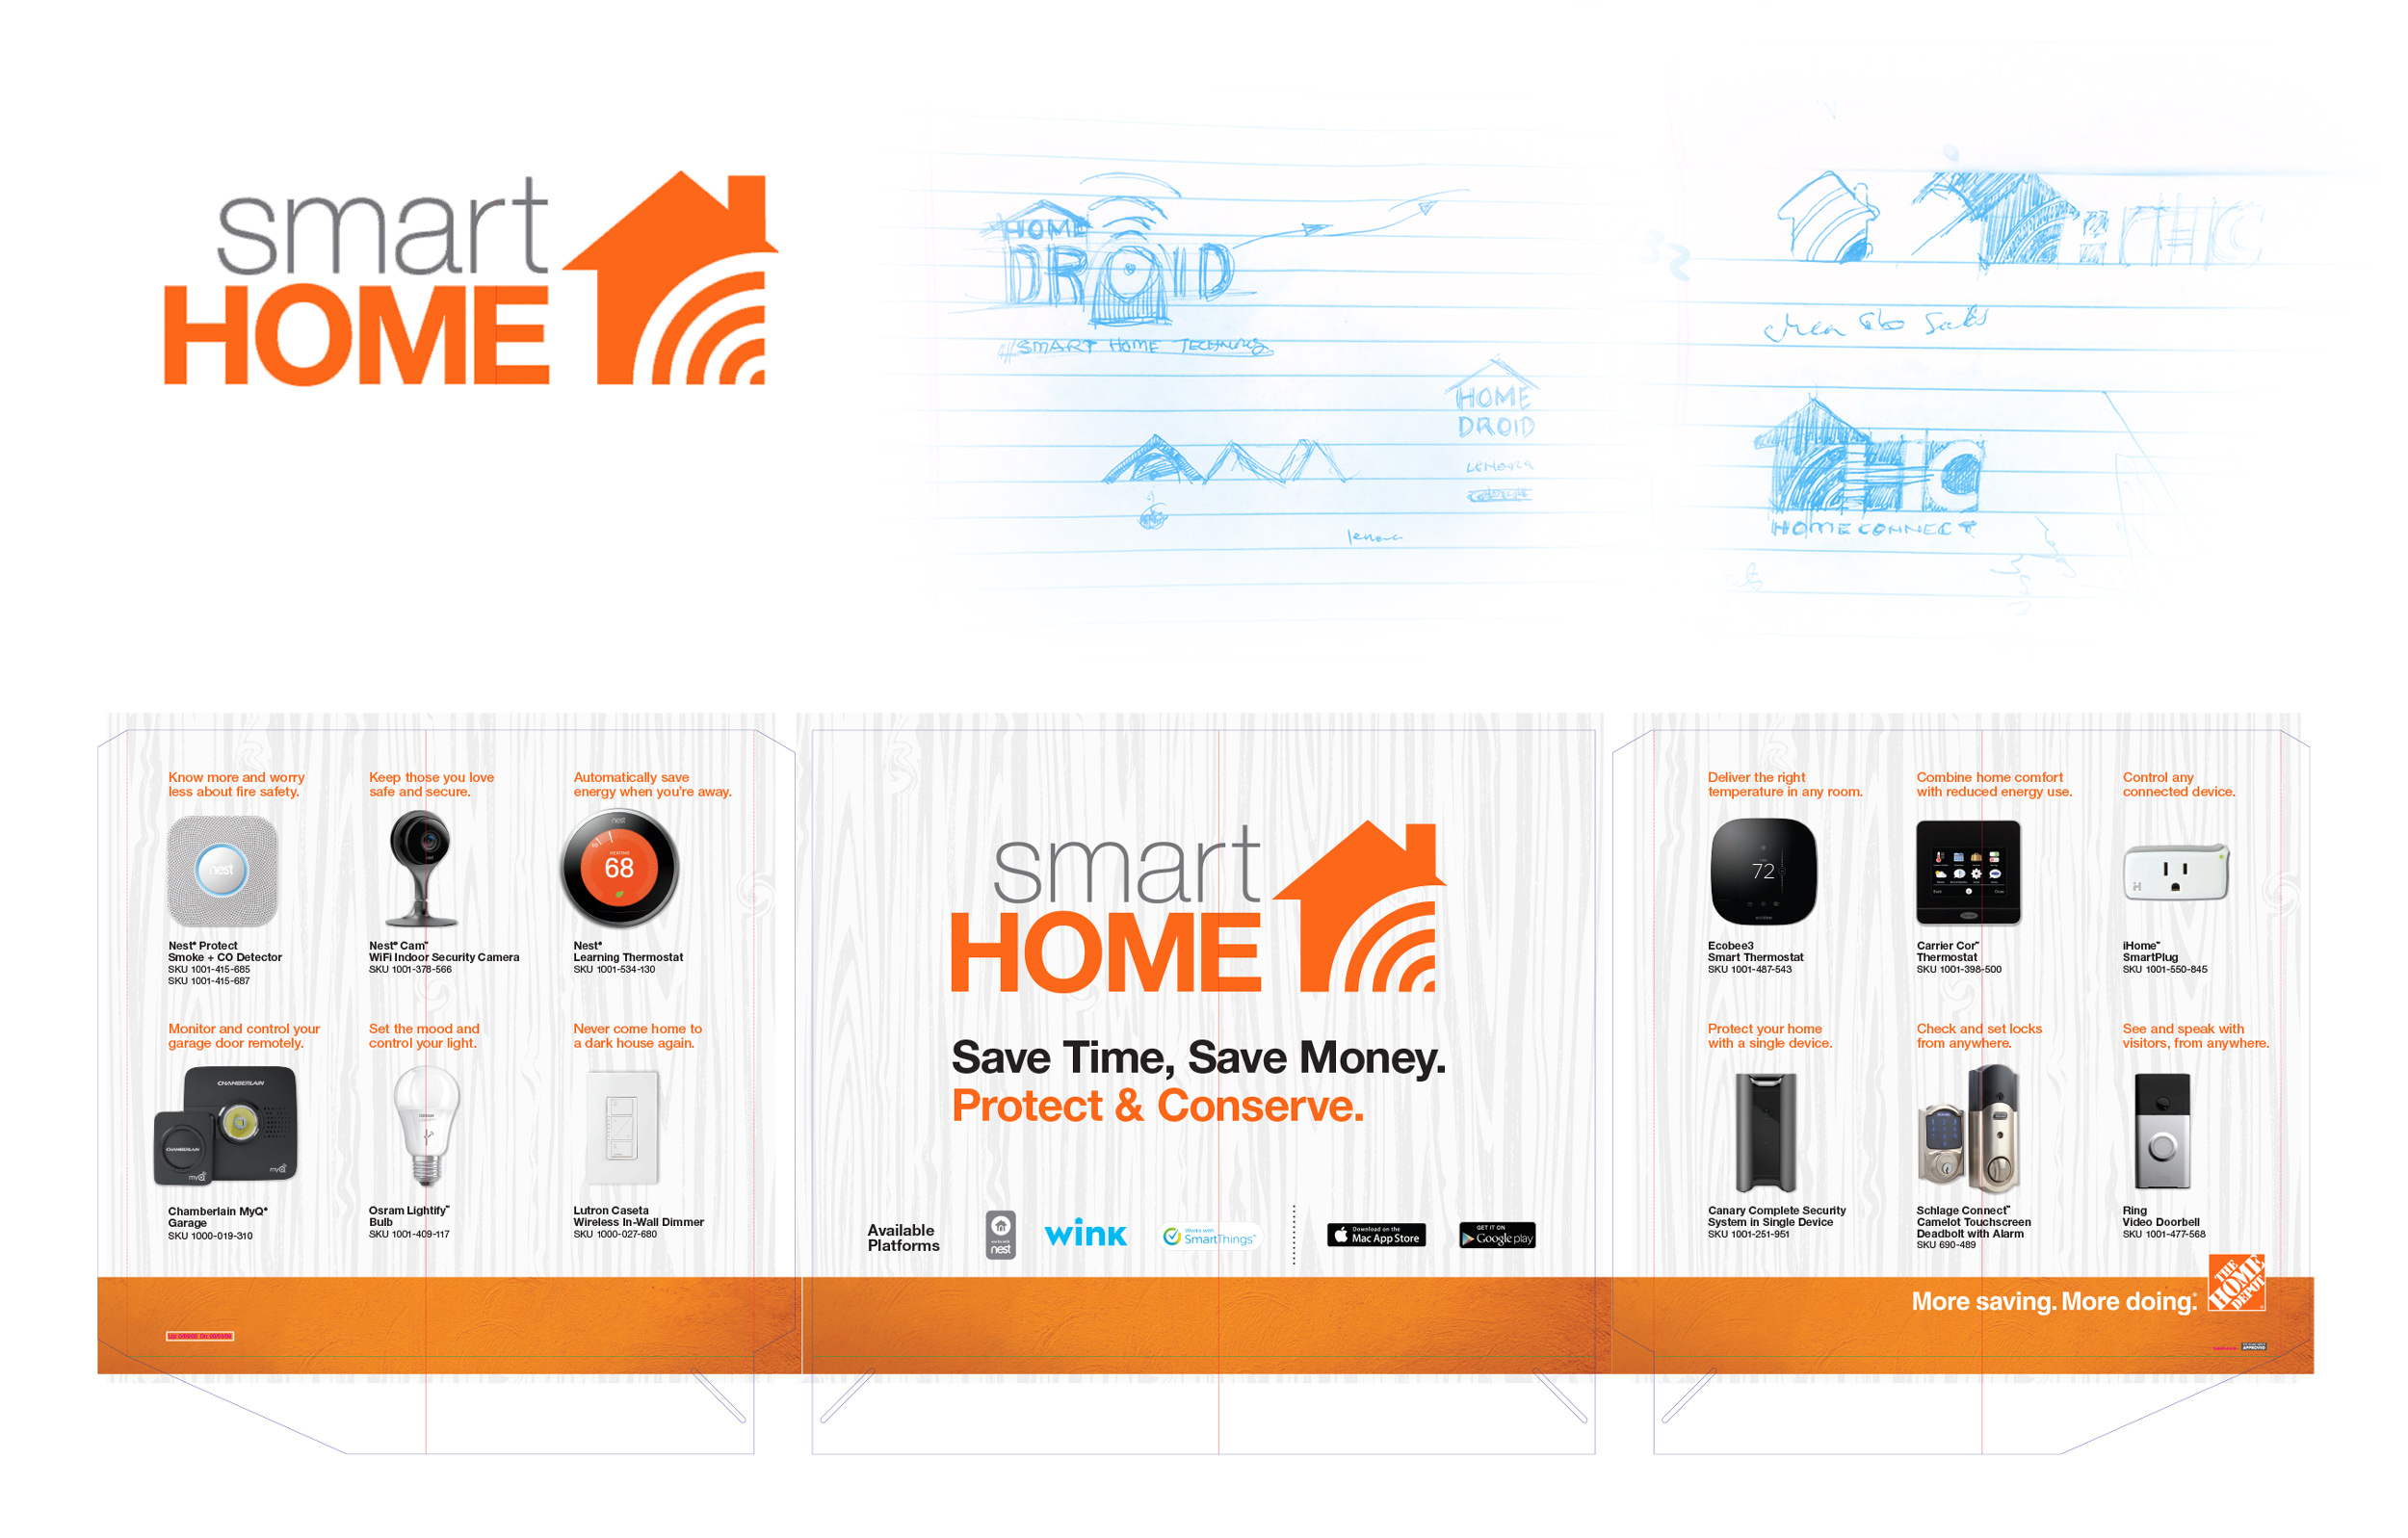 home depot smart home logo am creative group. Black Bedroom Furniture Sets. Home Design Ideas